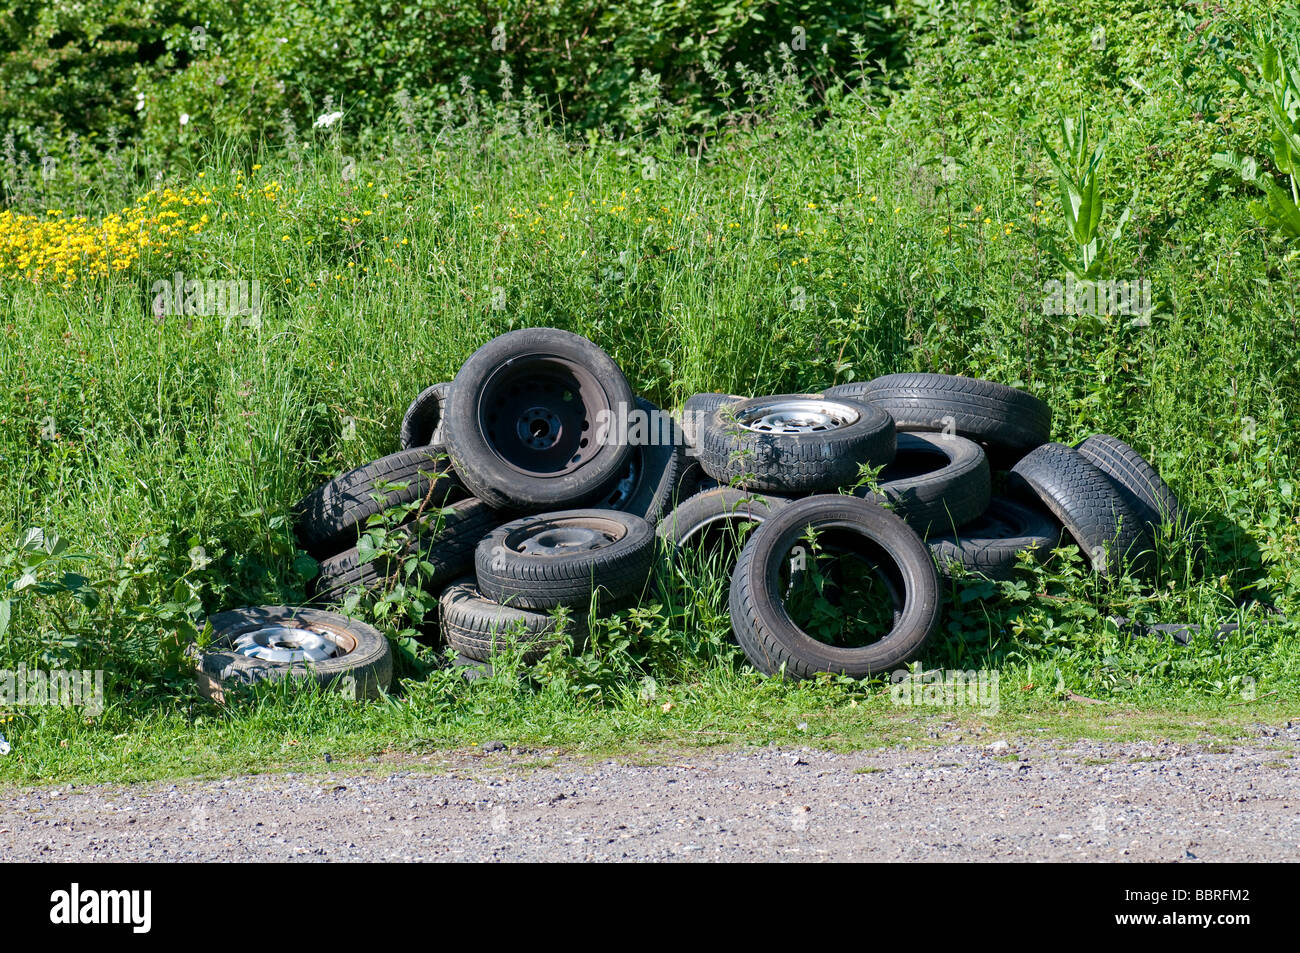 Illegal fly tipping. Abandoned tyres in car park of nature reserve - Stock Image